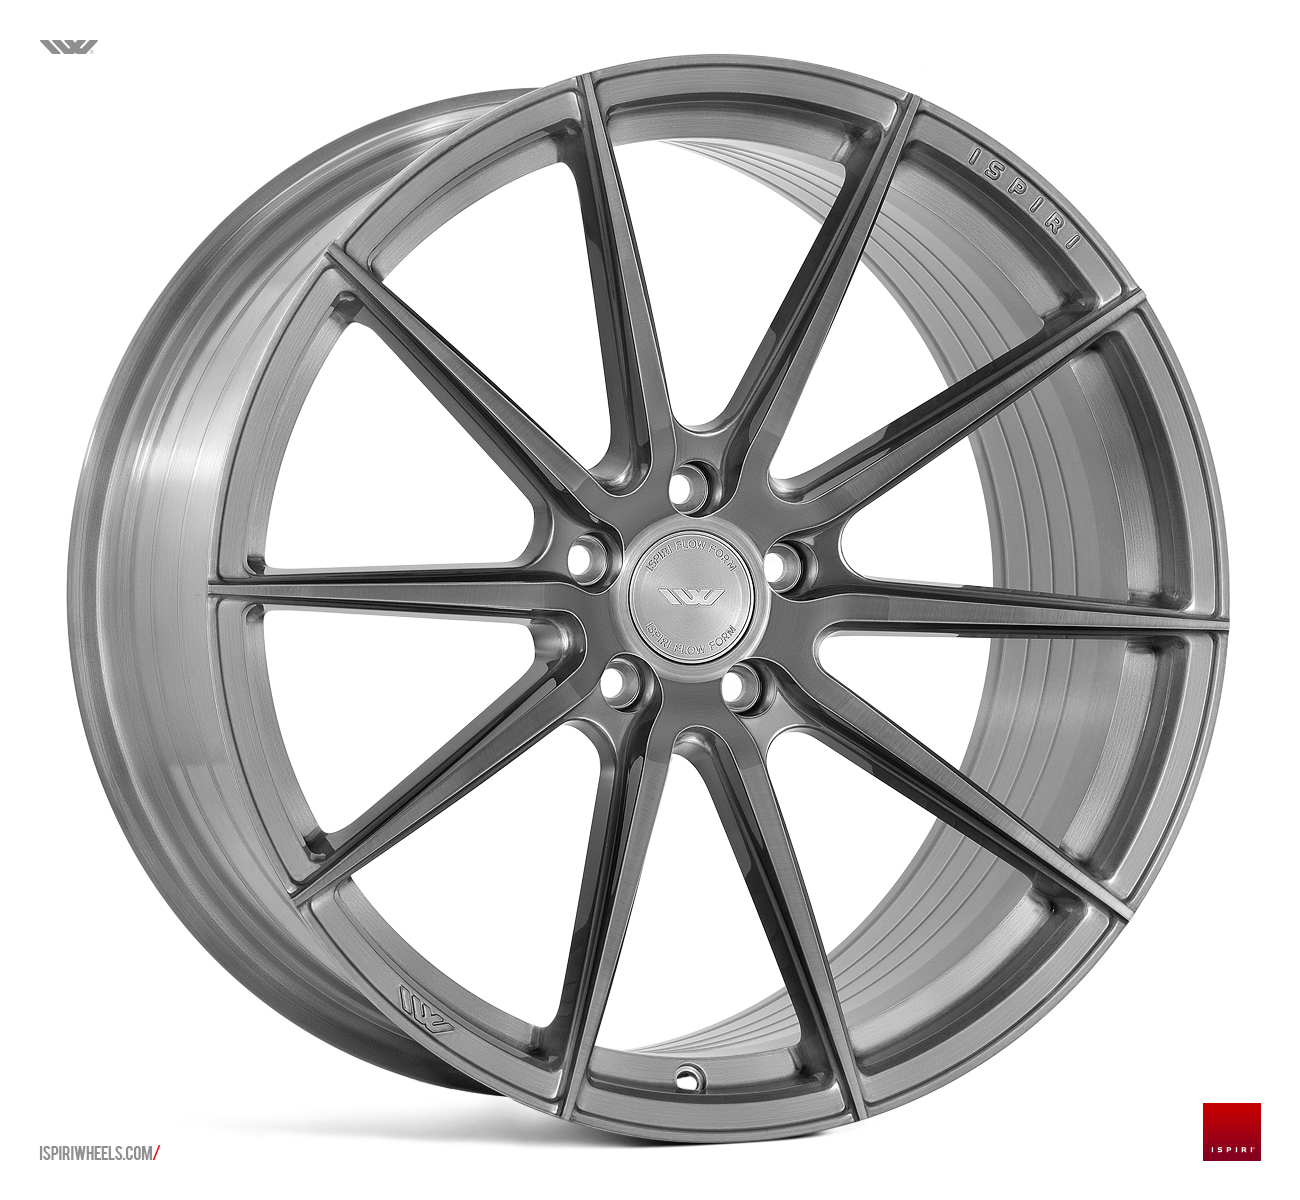 "NEW 20"" ISPIRI FFR1 MULTI-SPOKE ALLOY WHEELS IN BRUSHED CARBON TITANIUM, DEEPER CONCAVE 10.5"" REARS"